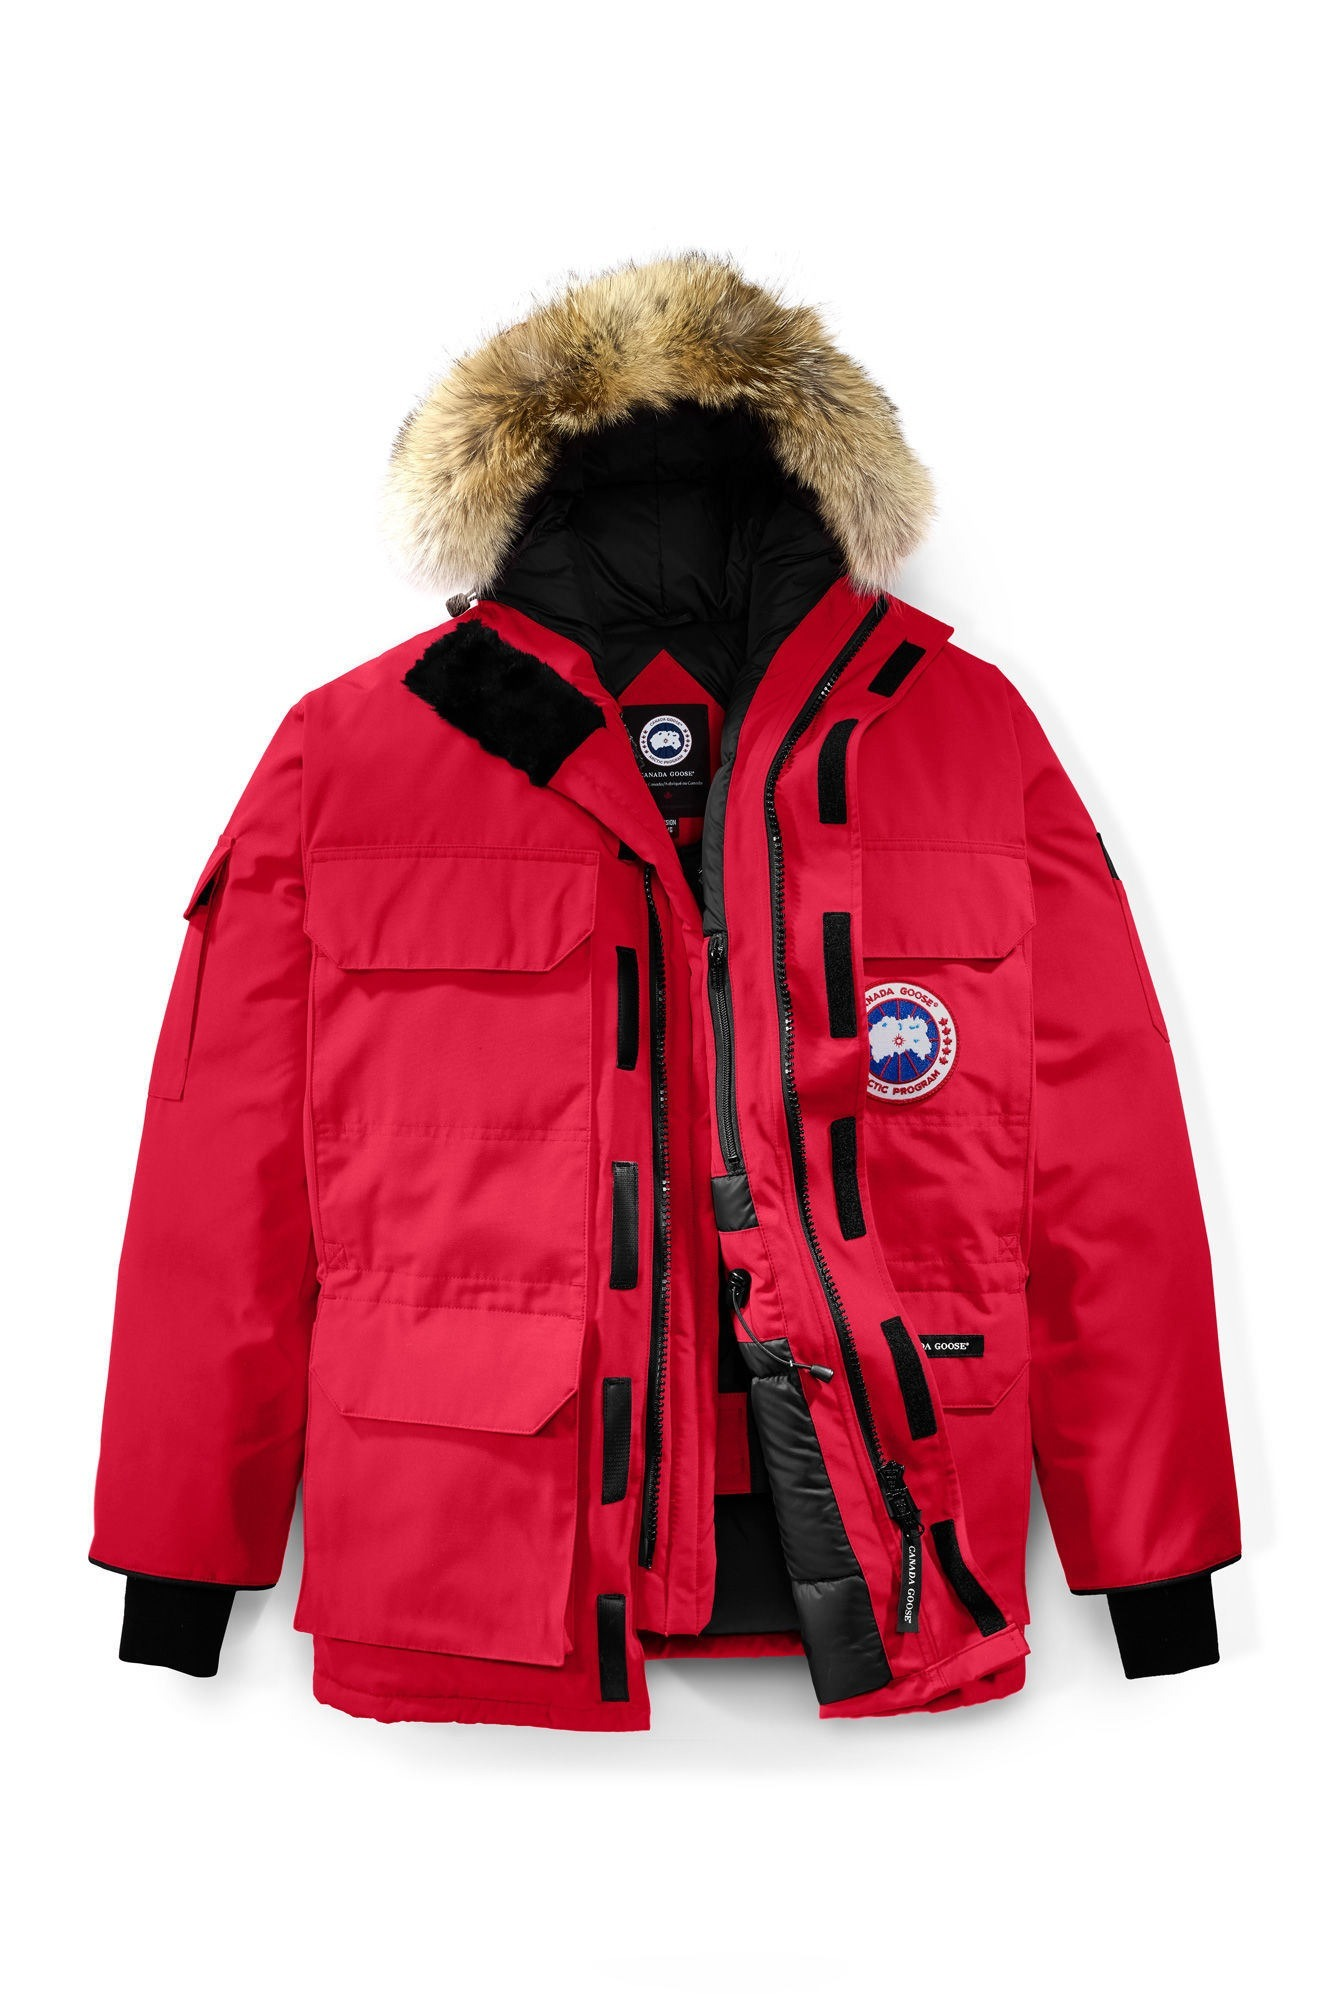 EXPEDITION PARKA MEN'S RED 4567